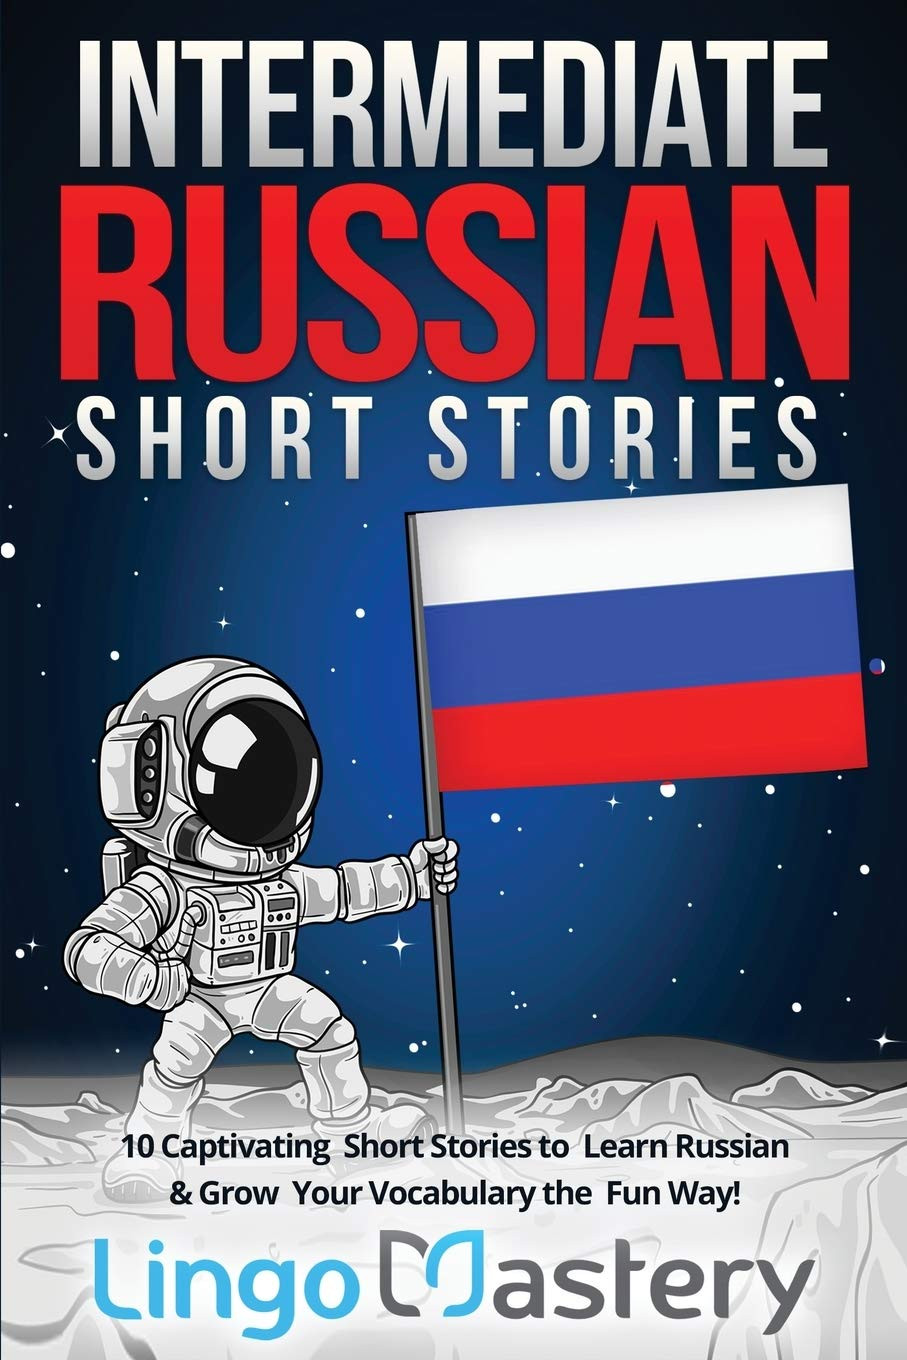 Russian stories for Intermediate students